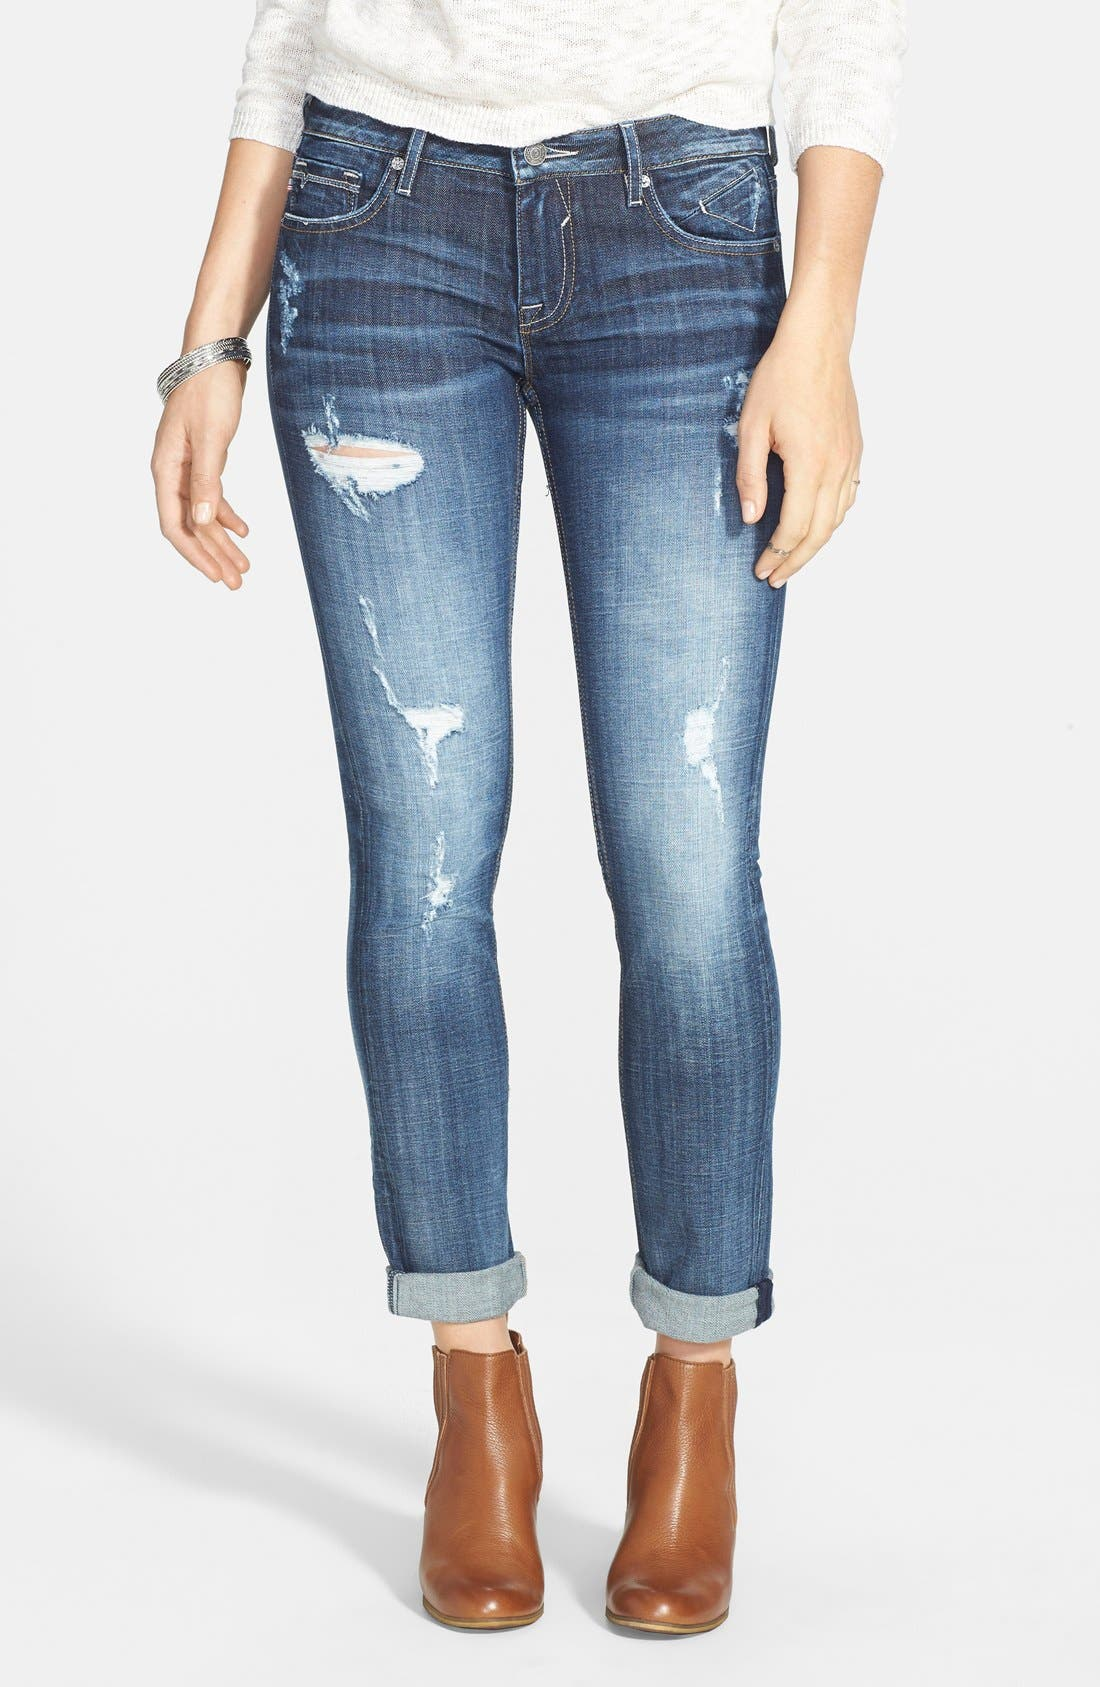 Main Image - Vigoss 'Thompson Tomboy' Crop Jeans (Medium Wash)